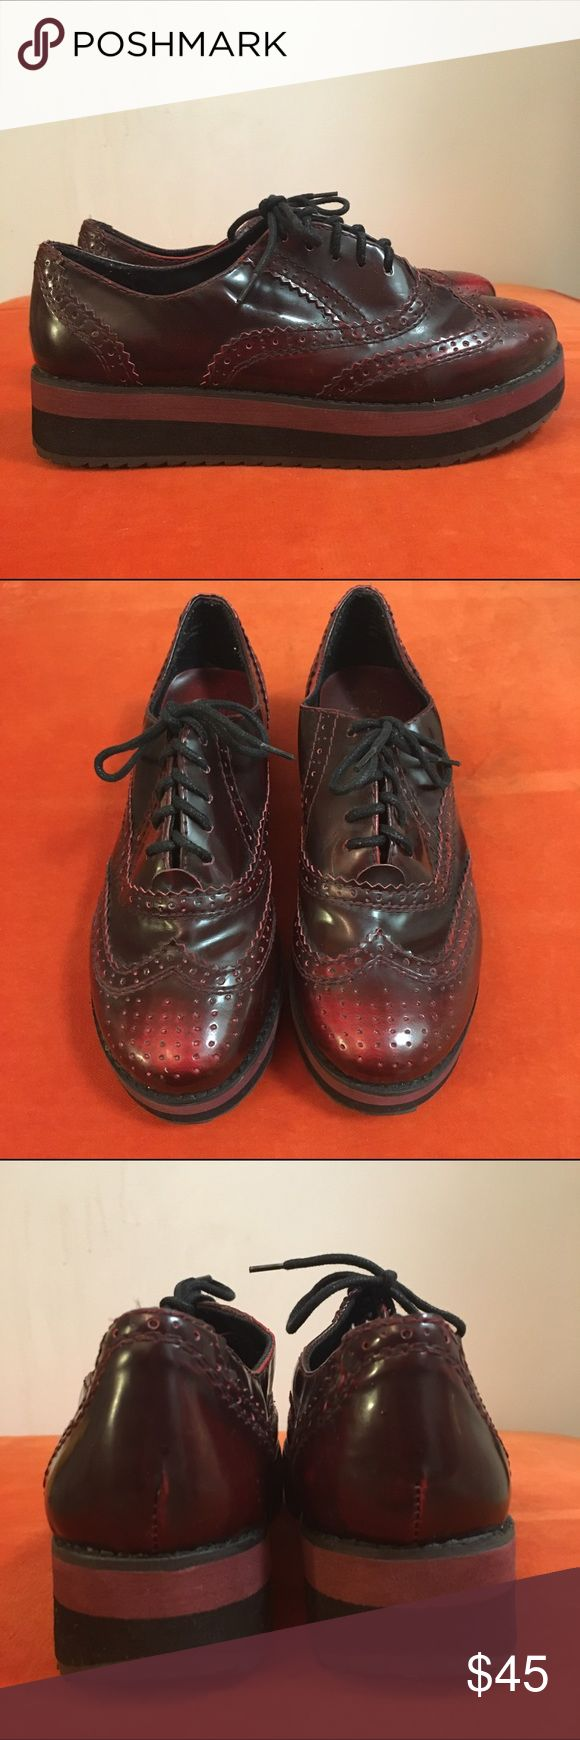 Oxblood Red patent leather oxford creepers i am selling a never been worn paid of super stylish oxfords!  color is oxblood red with some beautiful detailed stitching. laces are black and the sole is almost a sturdy foam-like sole. feels like you are walking on absolute comfort. the sole itself it about an inch tall (gives it the creeper style aspect). check out the pics! Big Buddha Shoes Flats & Loafers